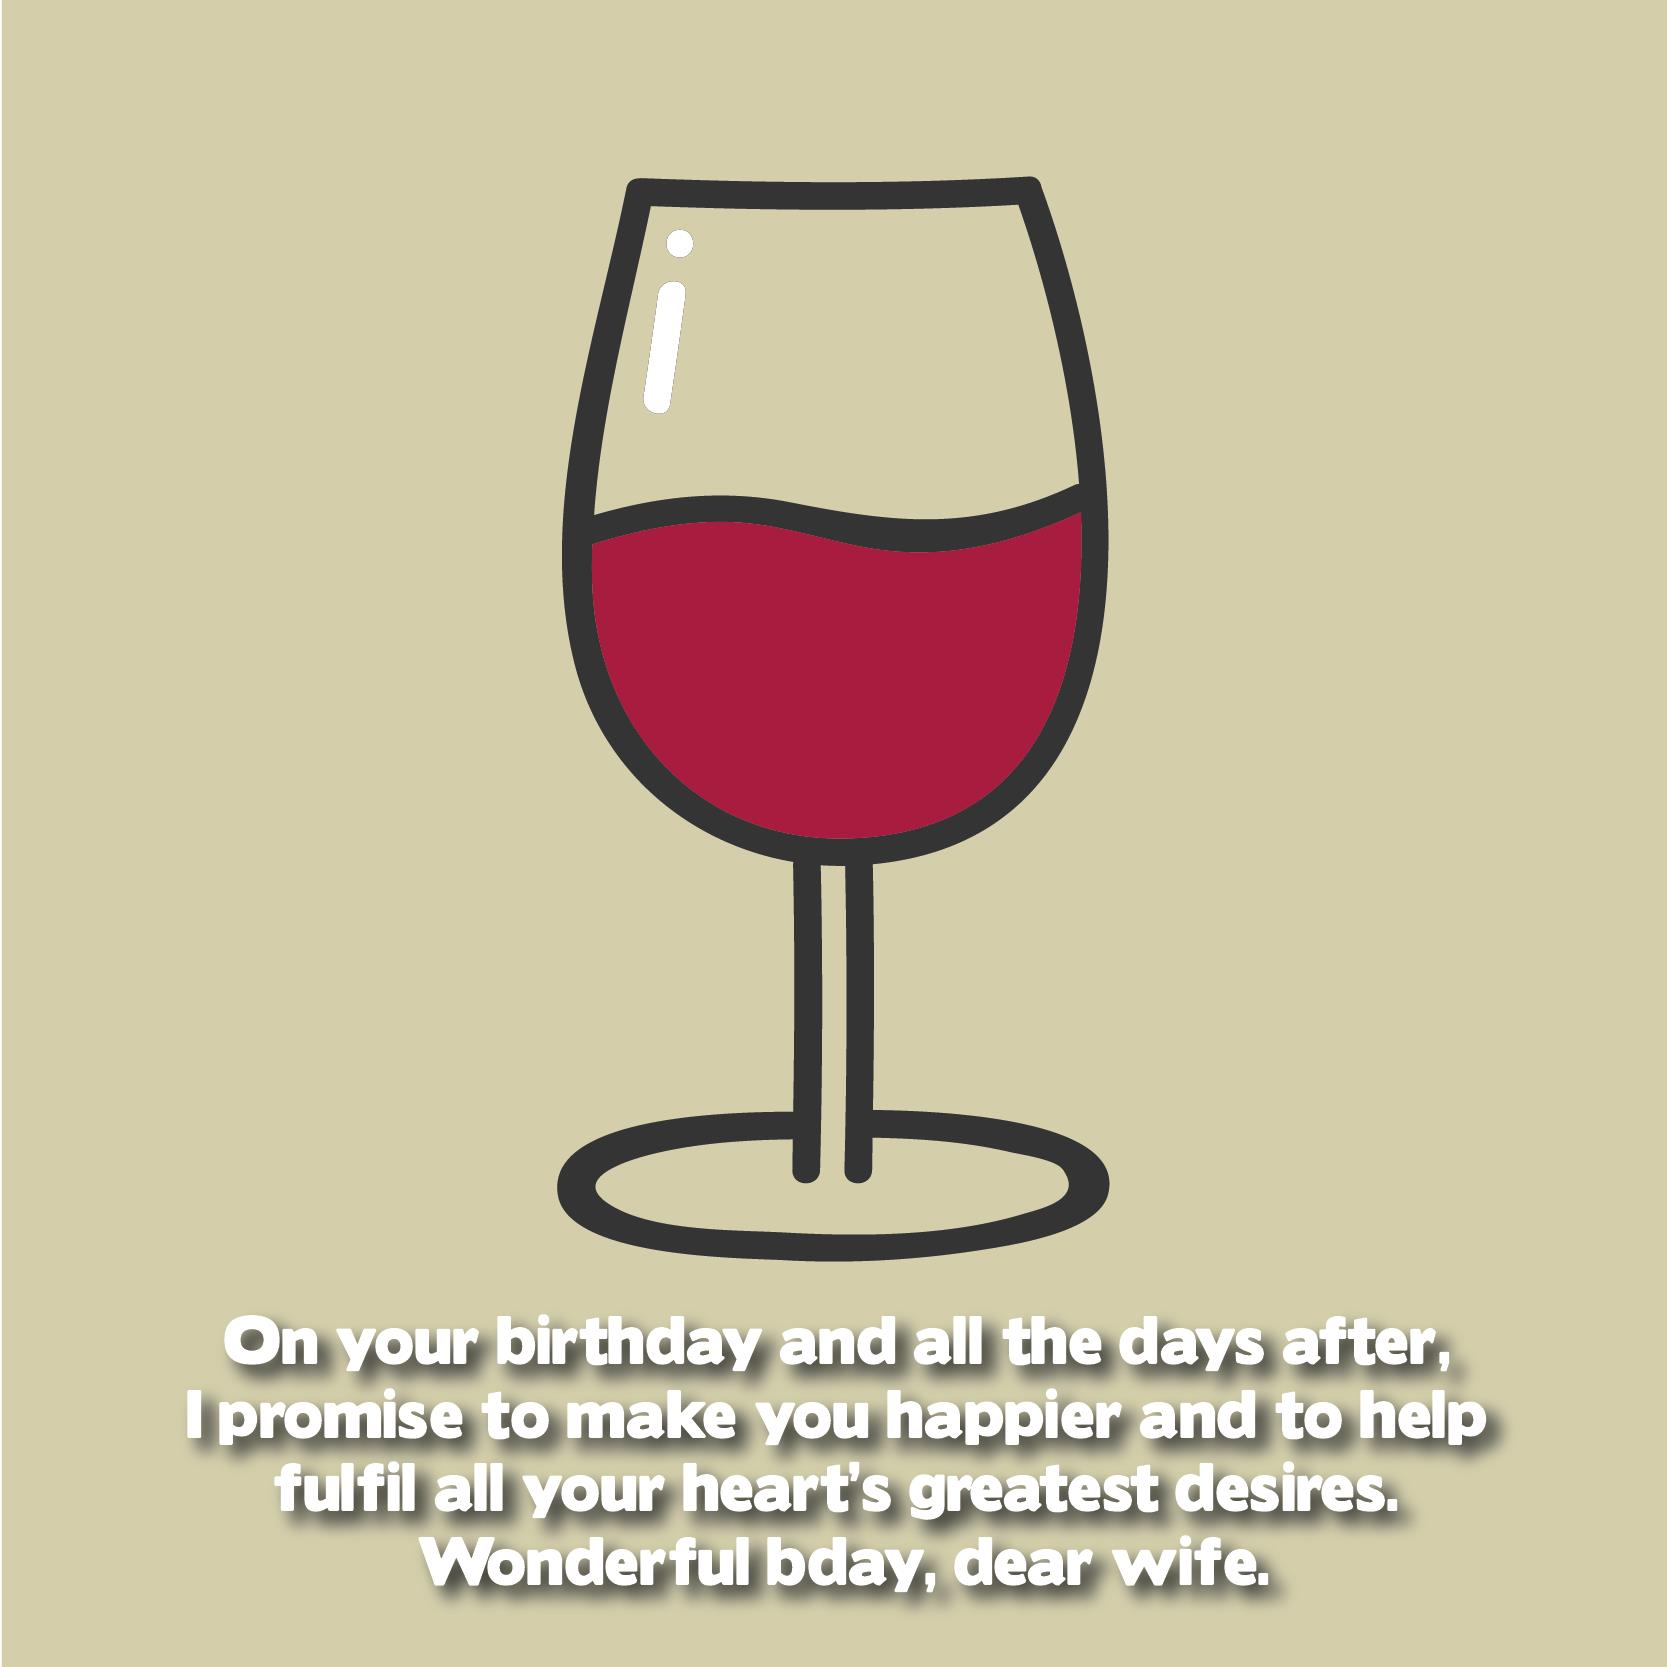 romantic-birthday-wishes-for-wife-02